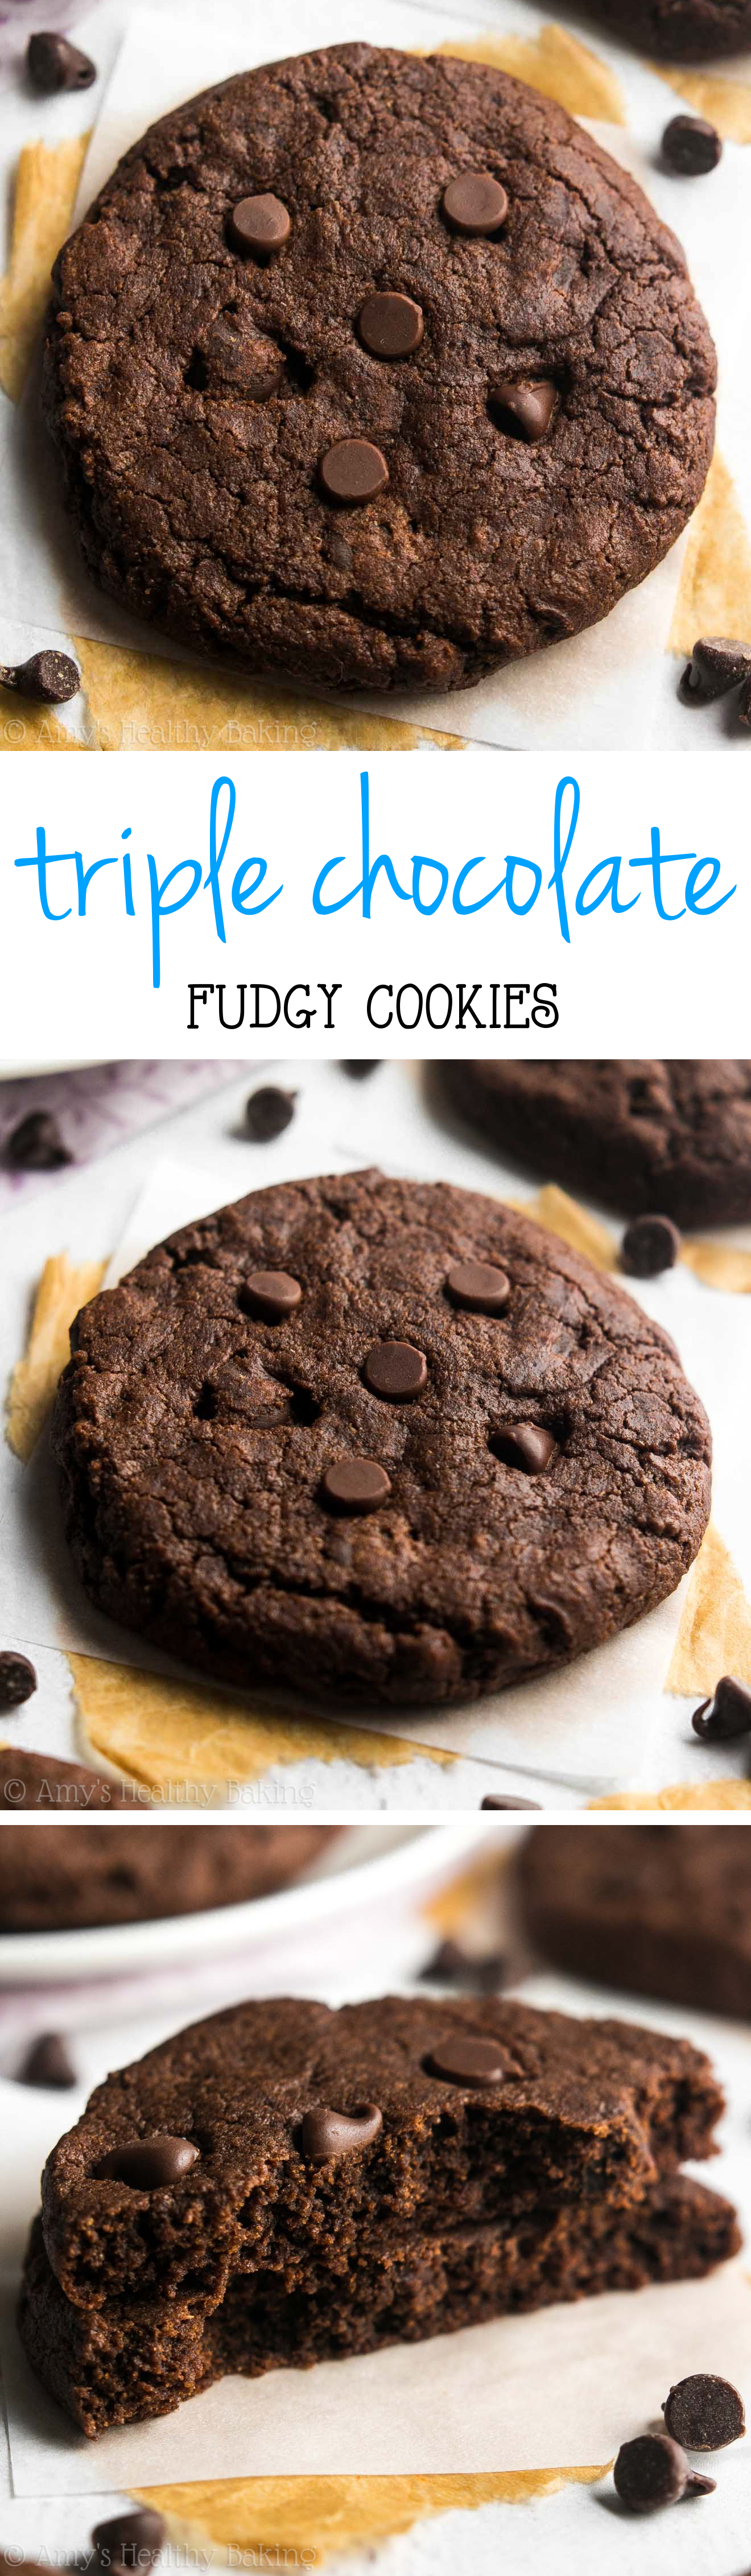 Rich, chewy & SO irresistible! They basically taste like fudgy brownies -- but they're skinny & virtually guilt-free!